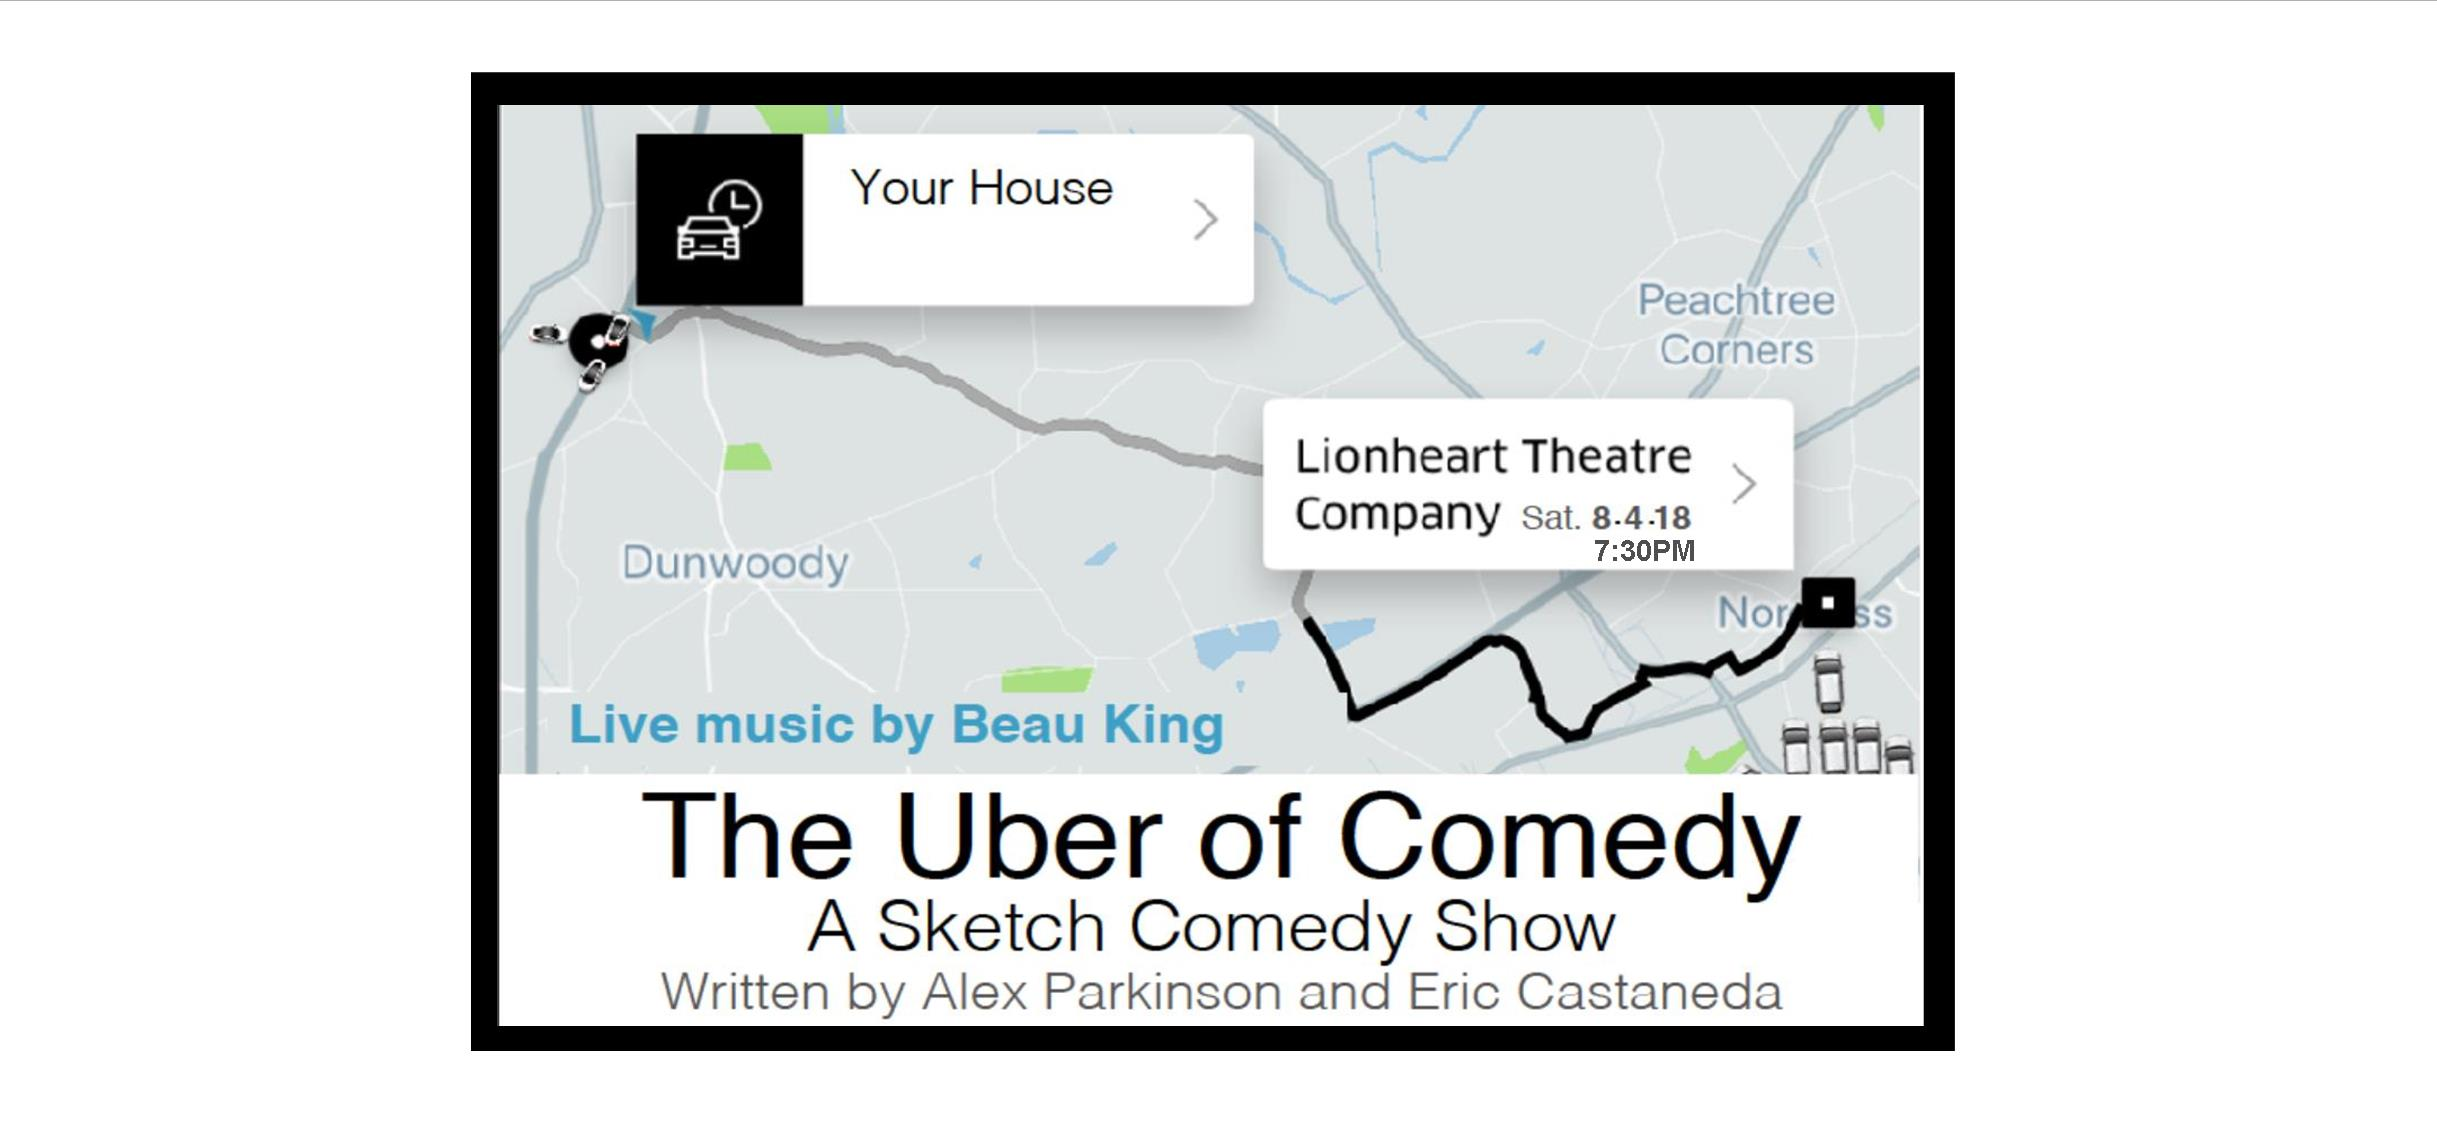 Uber of Comedy show at Lionheart Theatre